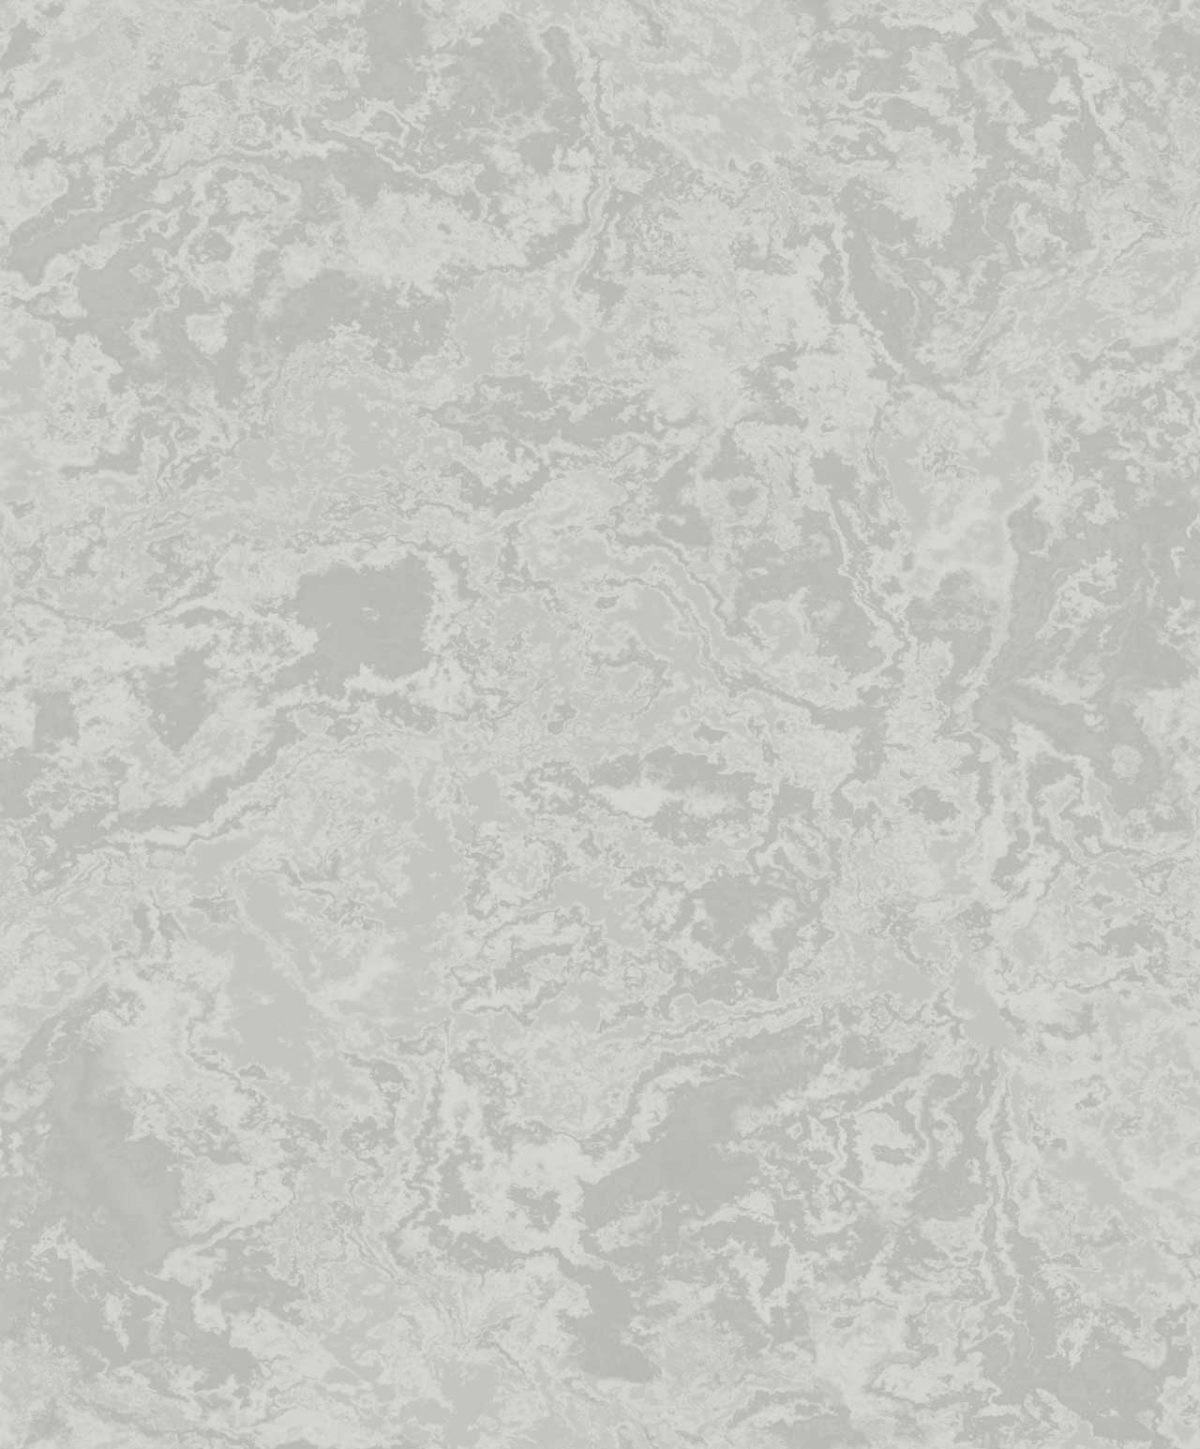 Capri-Luxury-Wallpaper-CP00706-CLOUD-MARBLE